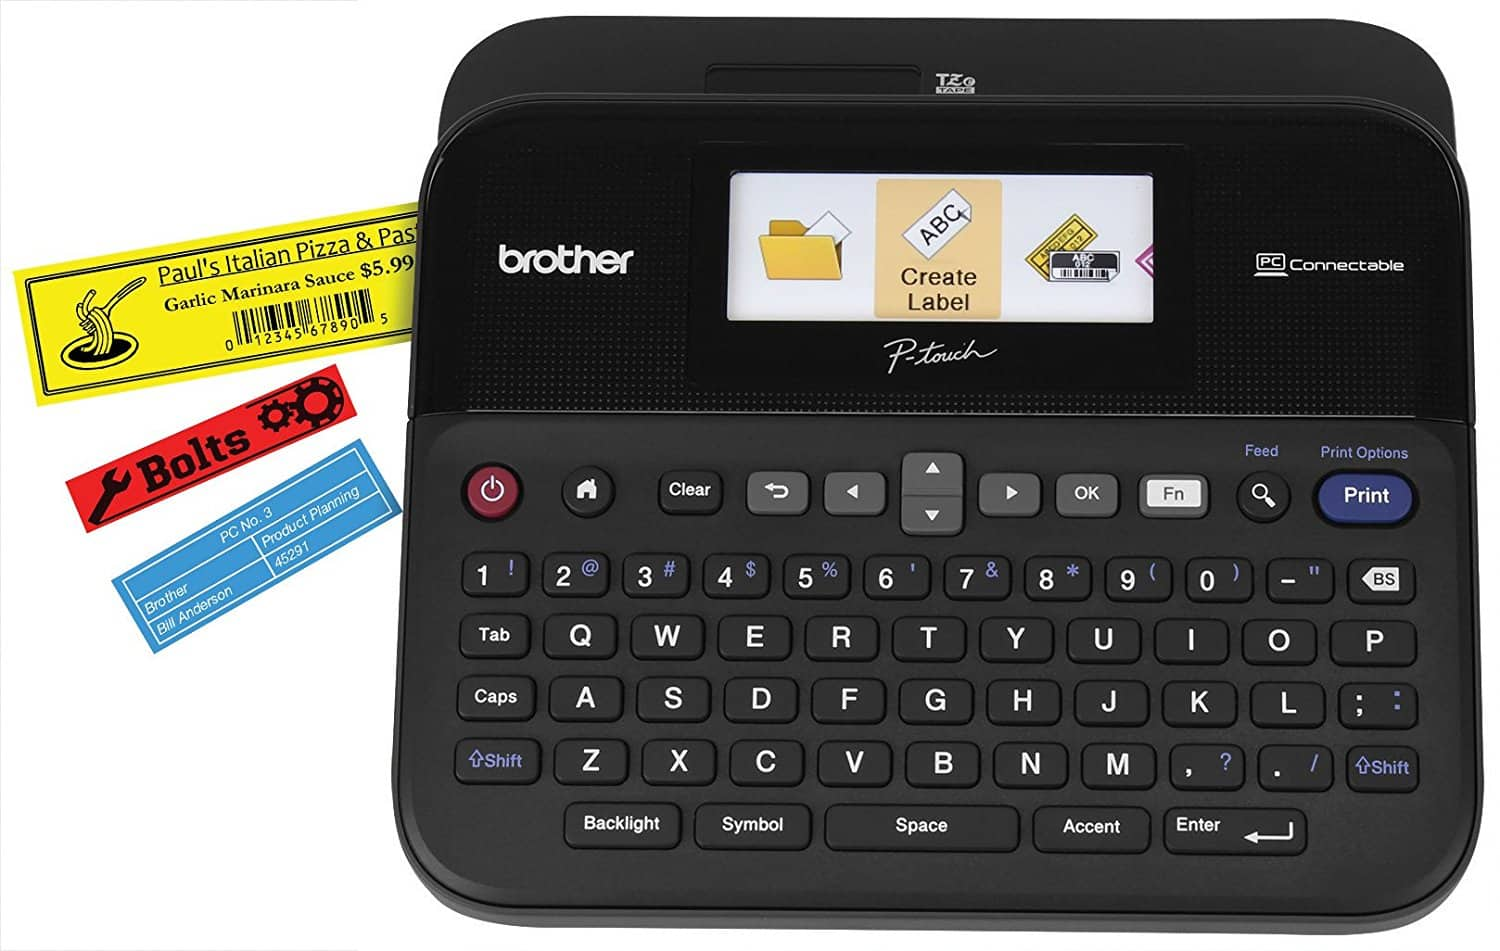 $50 Brother P-touch PTD600 Label Maker PC Connectible with Color Display